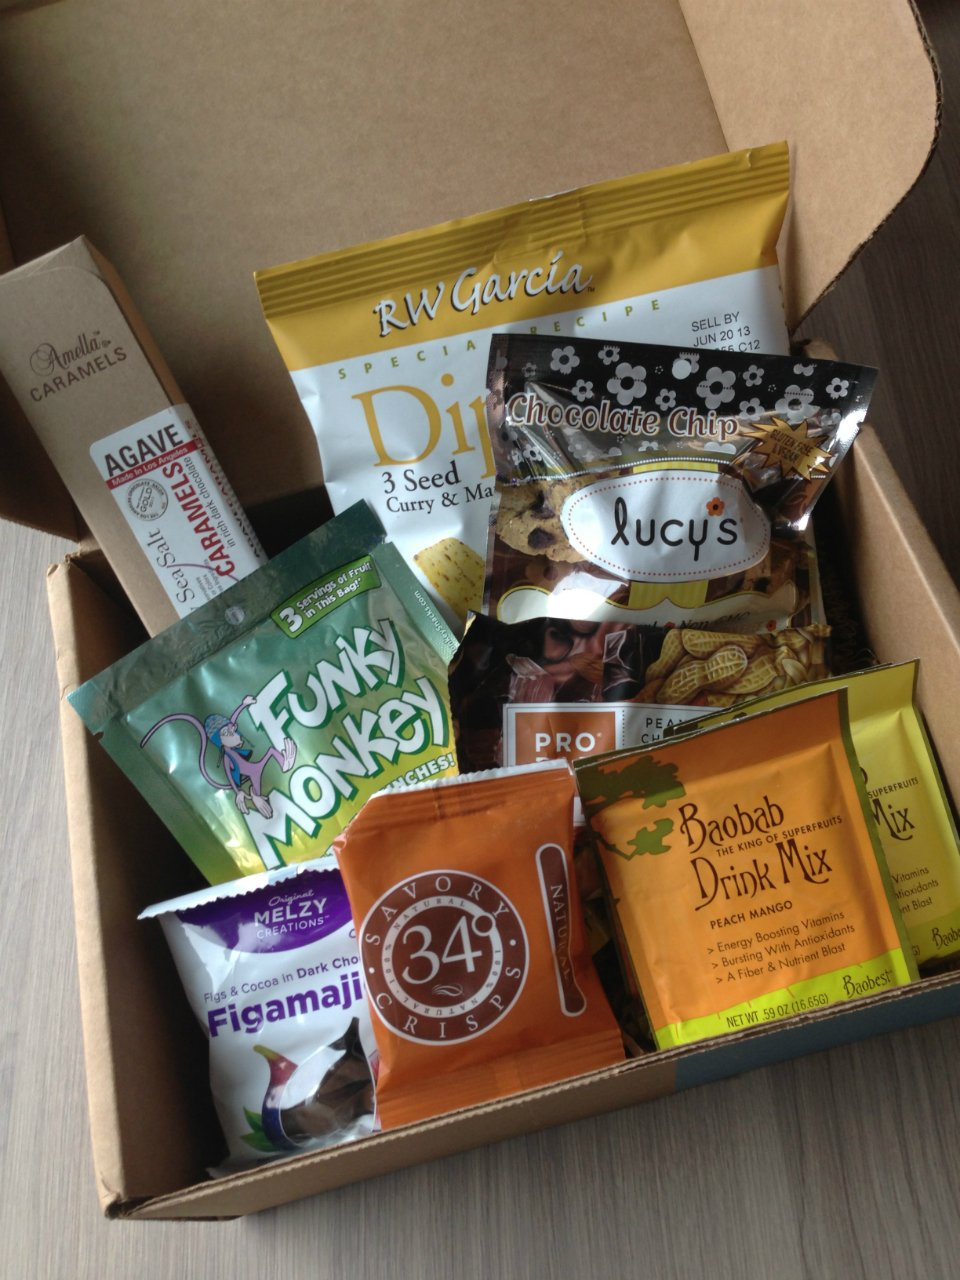 Blissmo Box - January 2012 Review - Feel Good Snacks - Monthly Eco-Friendly Subscription Service